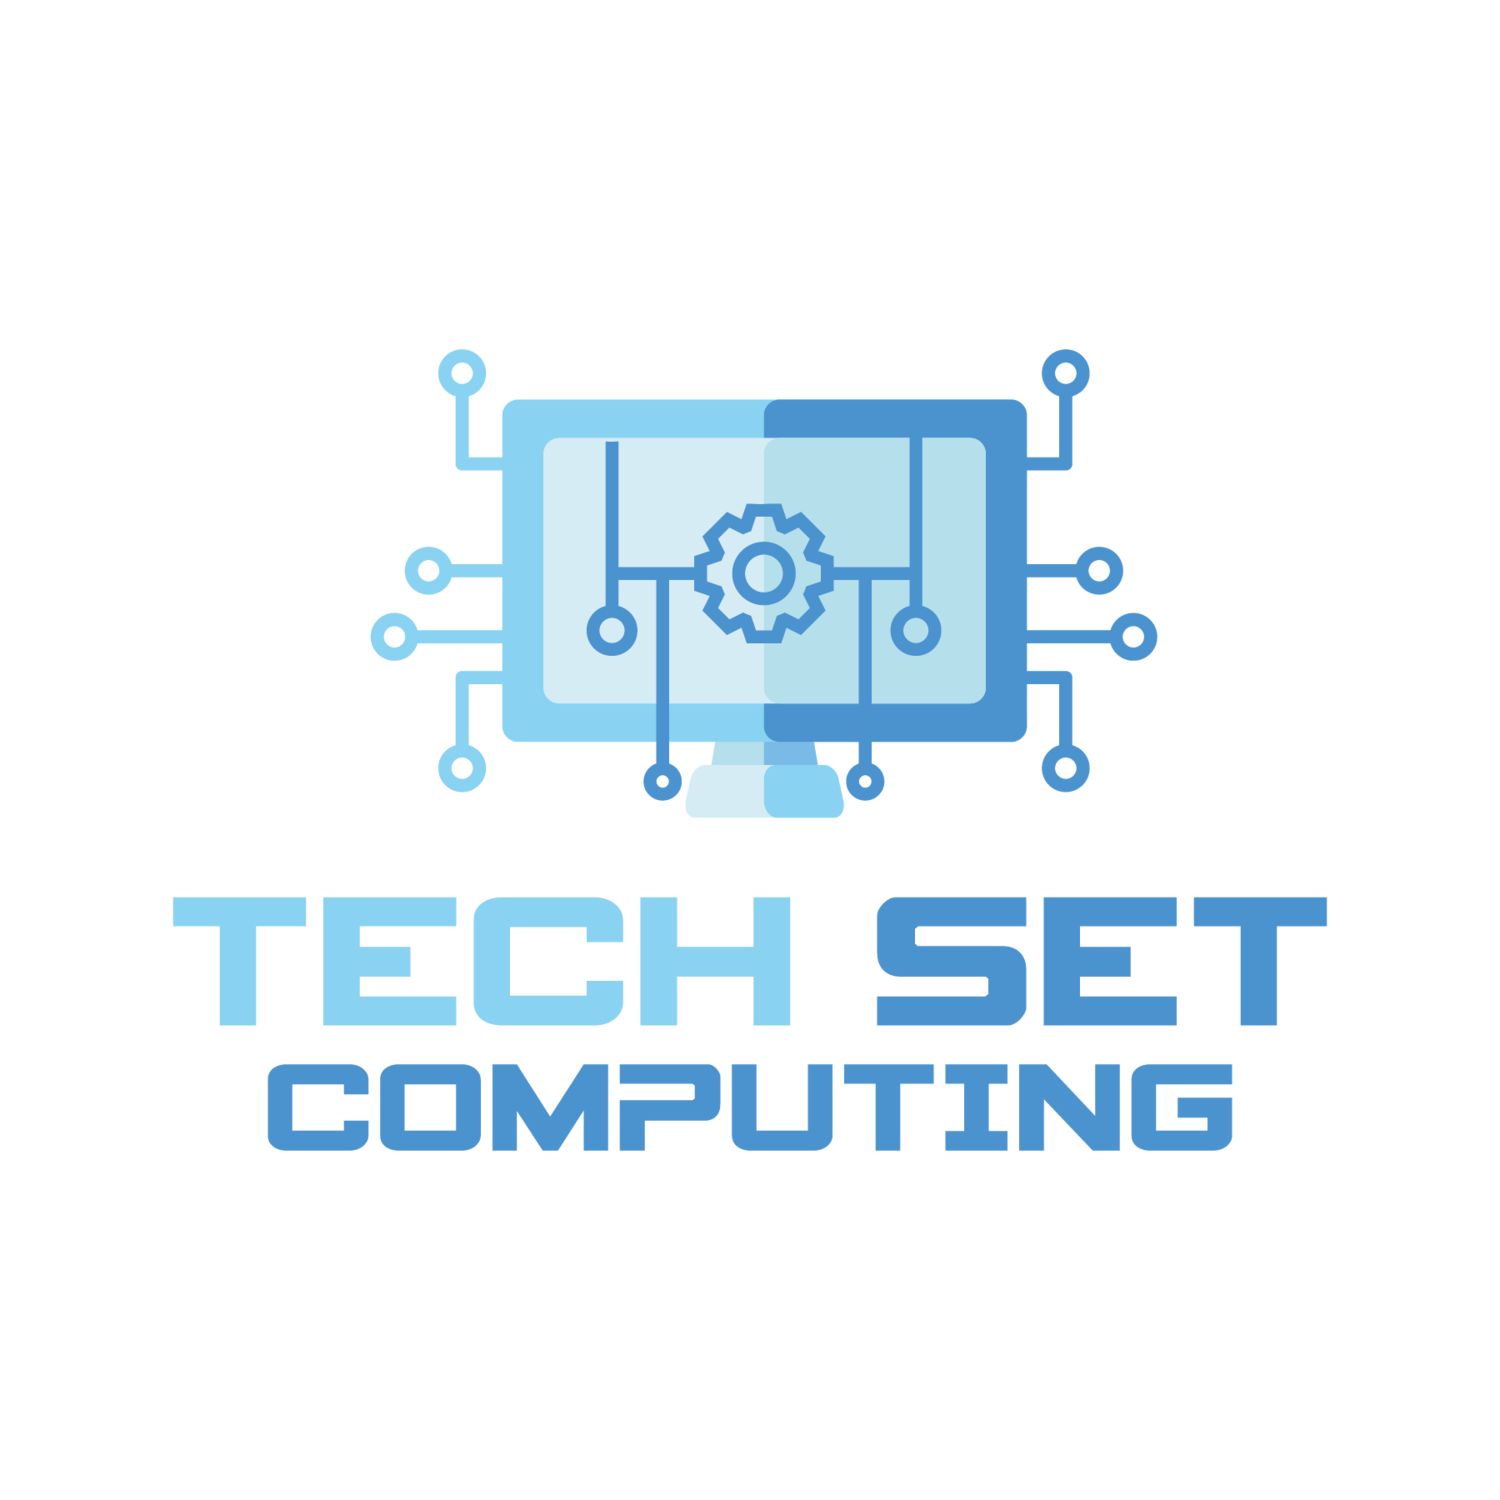 Tech Set Computing